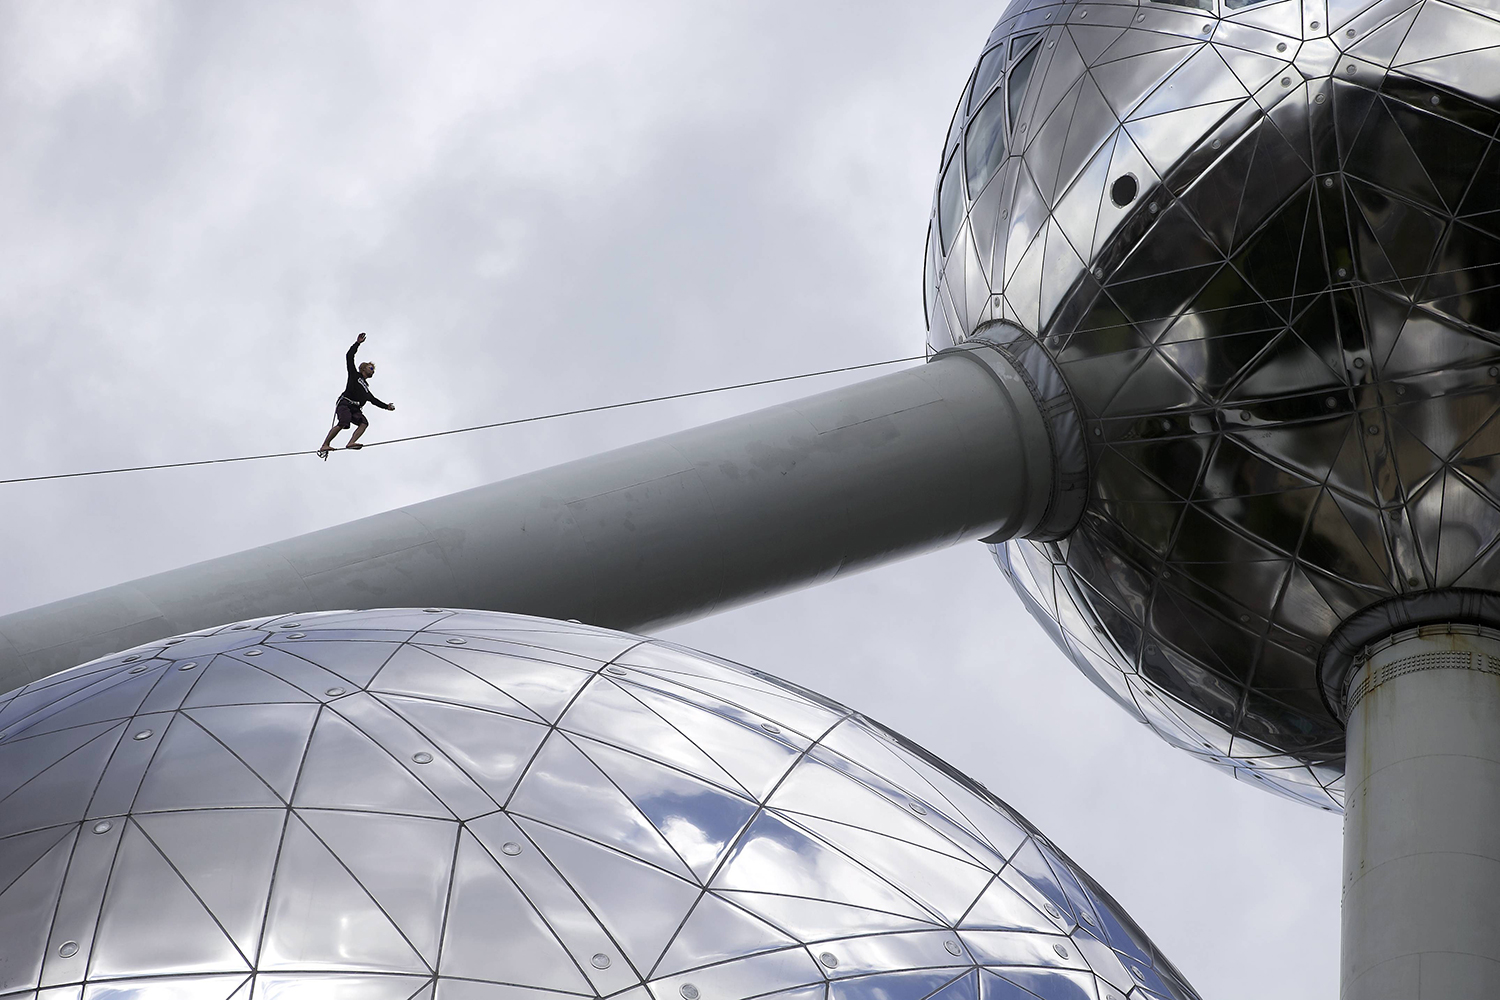 A person walks on a tightrope that connects the spheres of the atomium in Brussels.